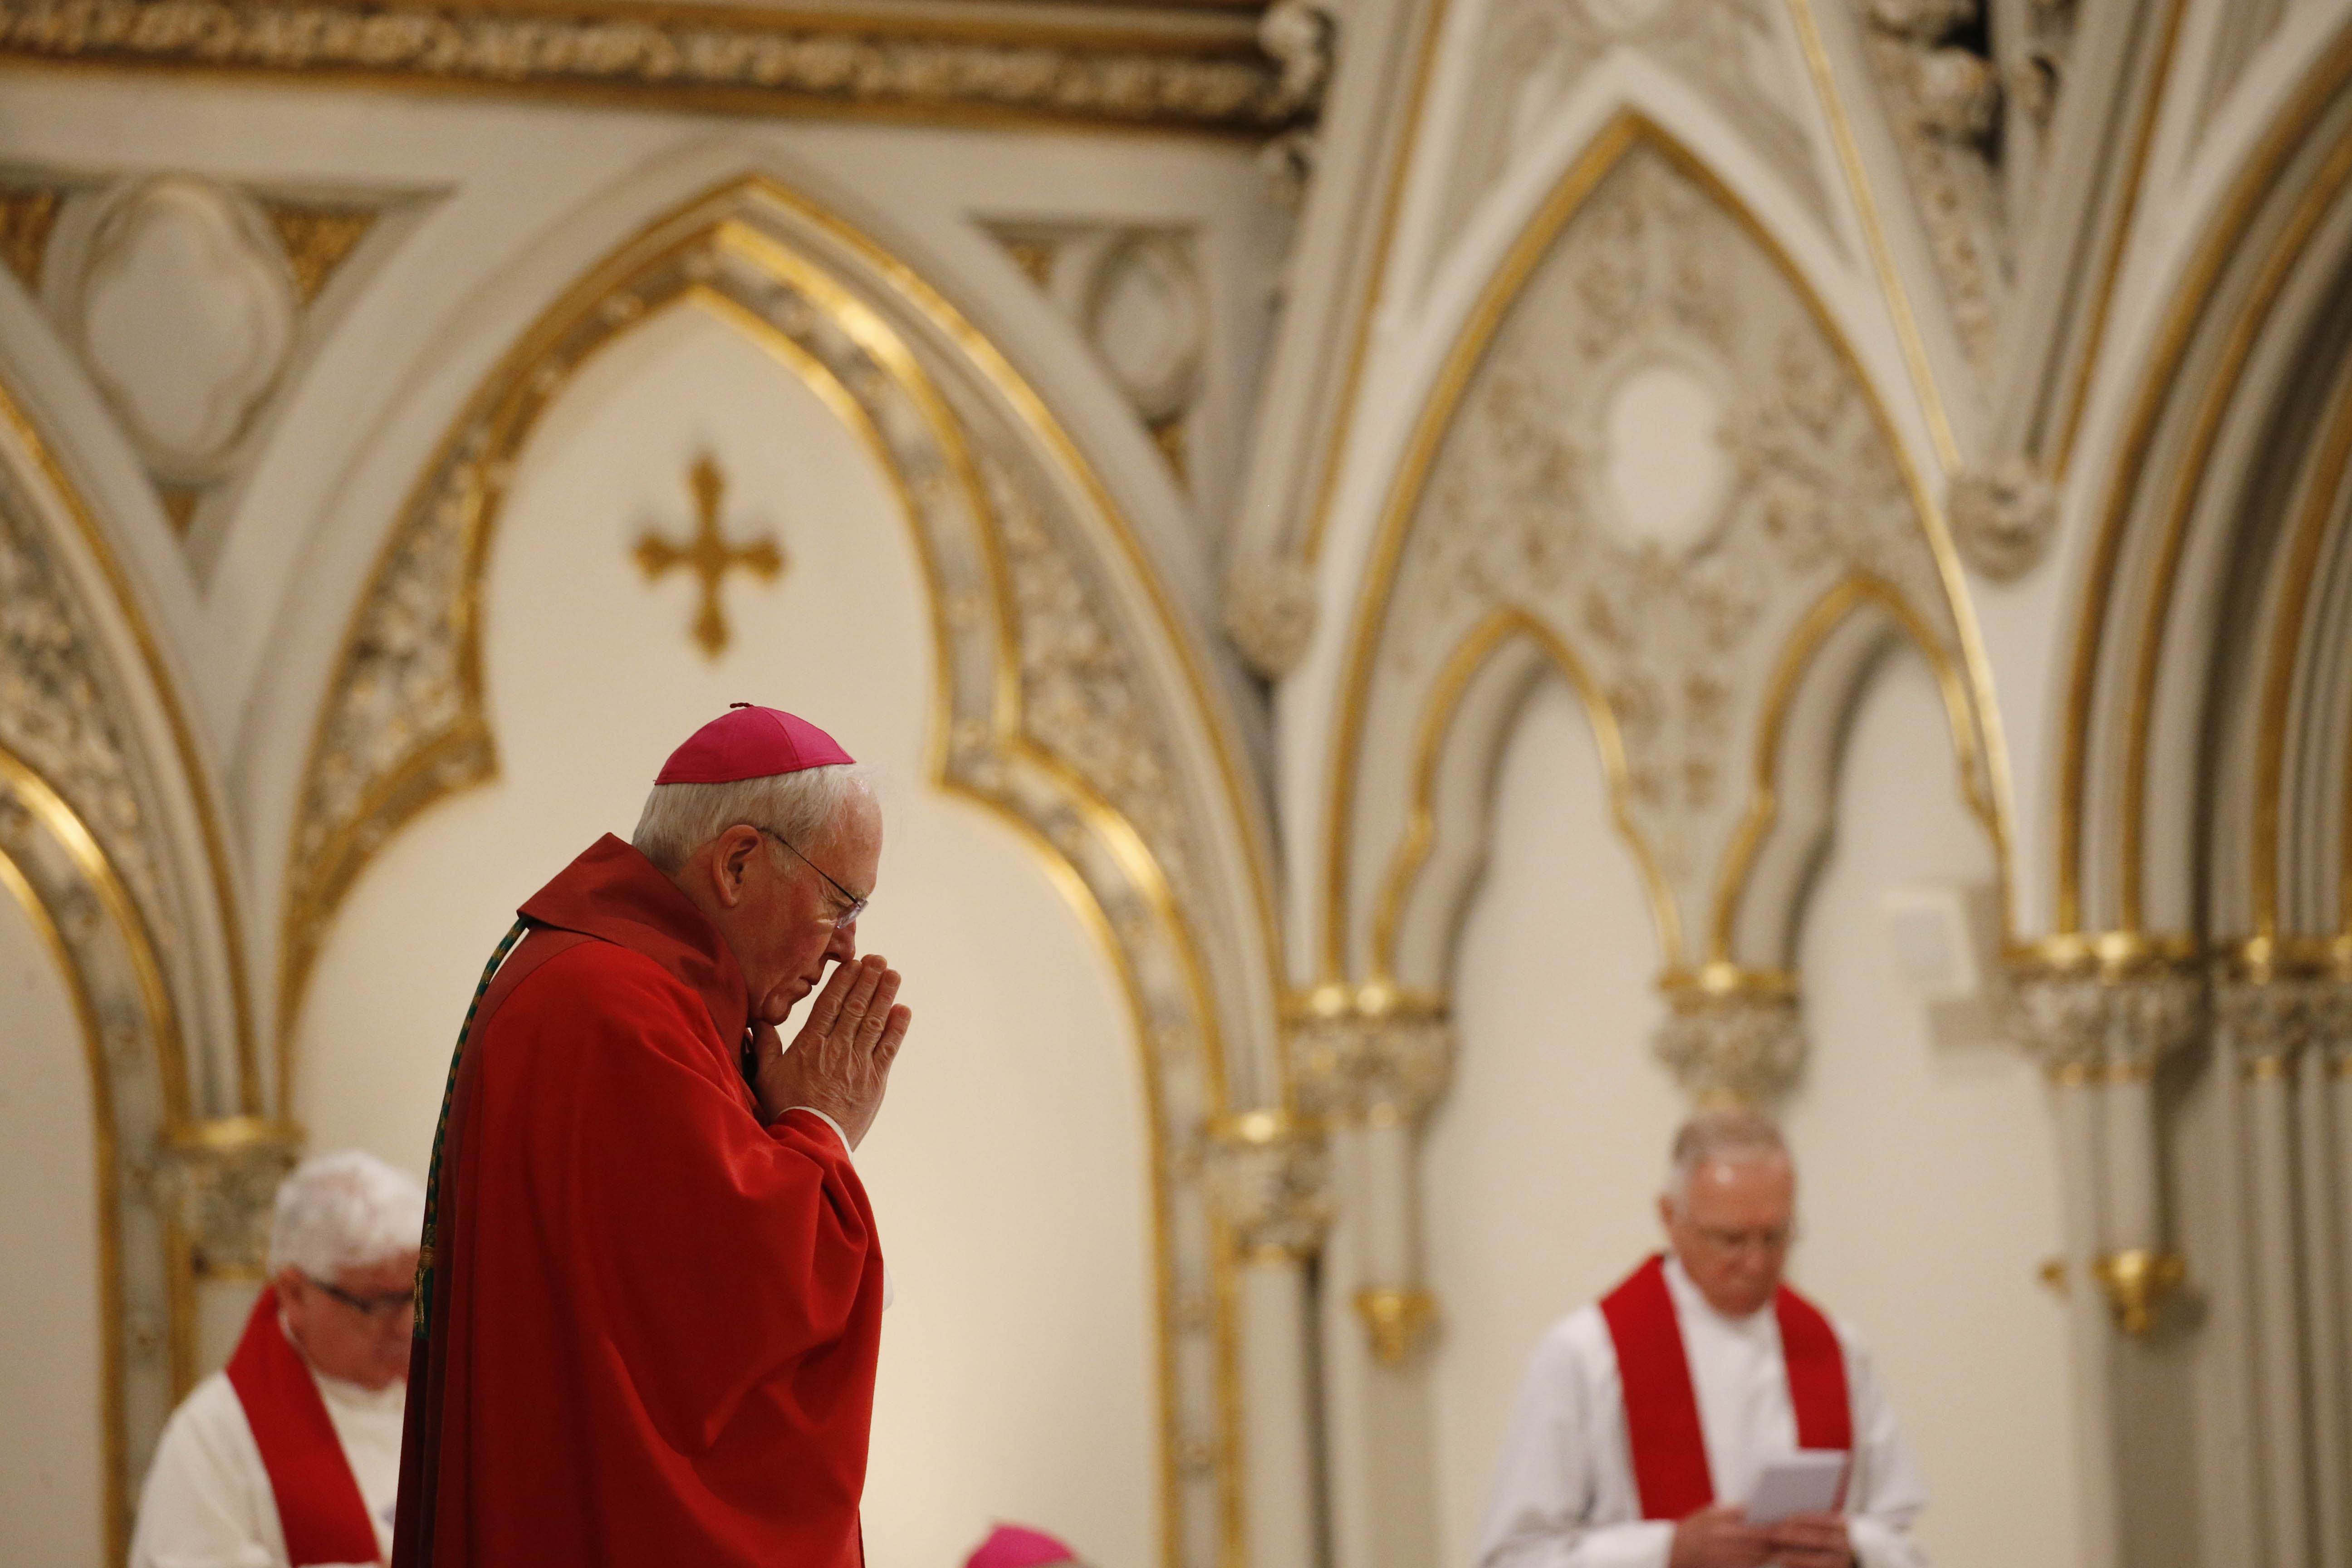 Bishop Richard Malone presides over the Solemn Celebration of the Lord's Passion at St. Joseph Cathedral on Good Friday, March 25, 2016.  (Derek Gee/Buffalo News)